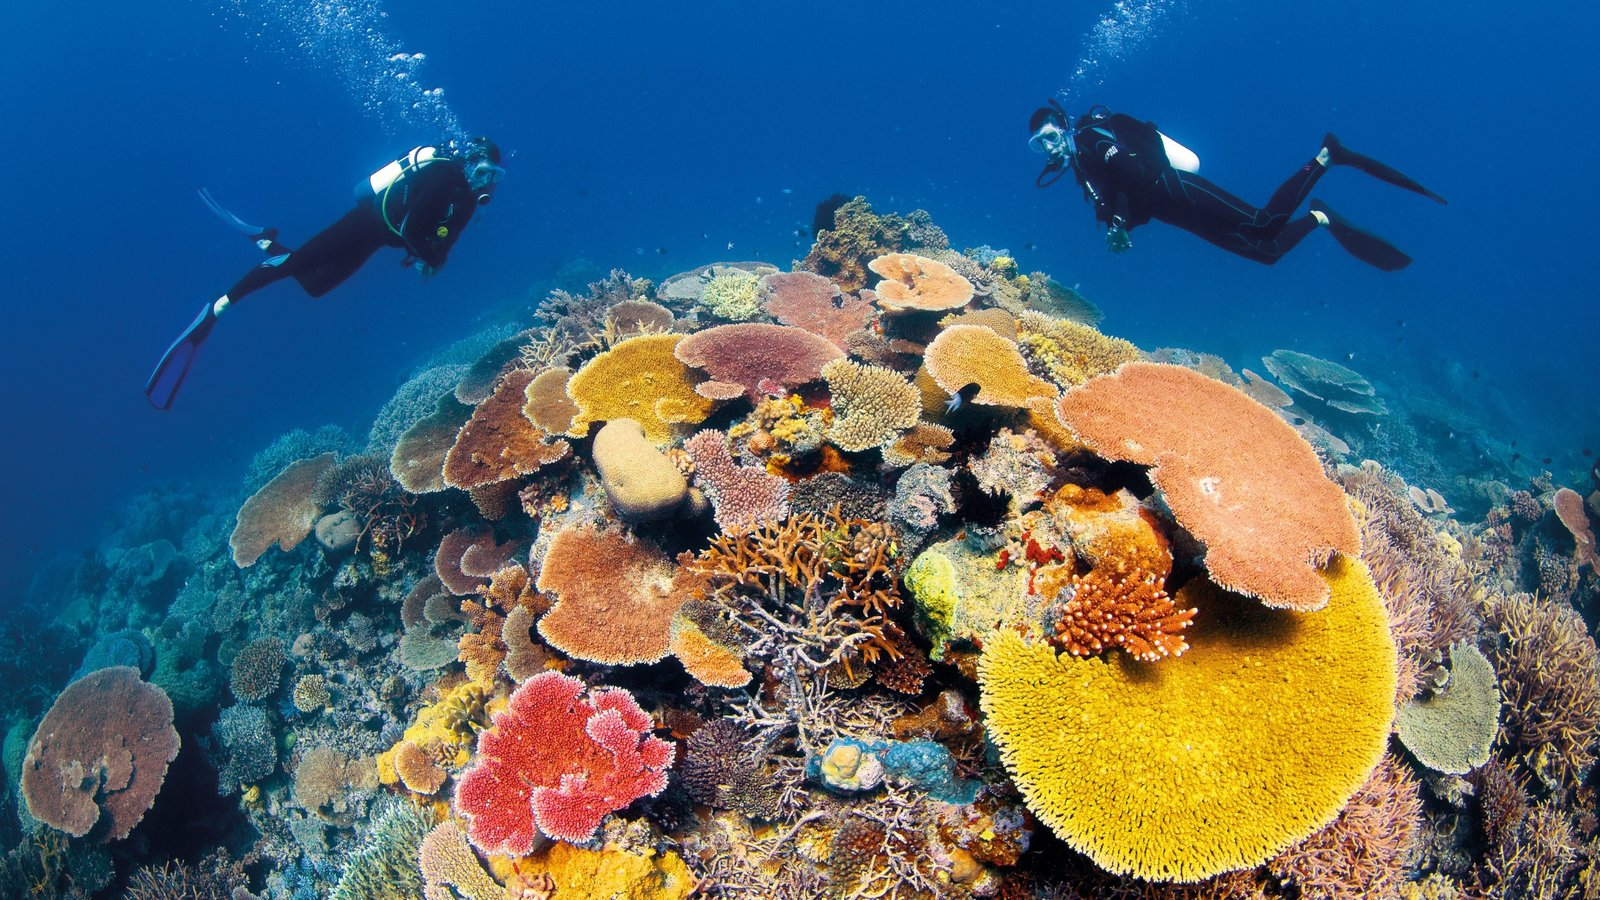 Great Barrier Reef featuring diving, marine life and colorful reefs